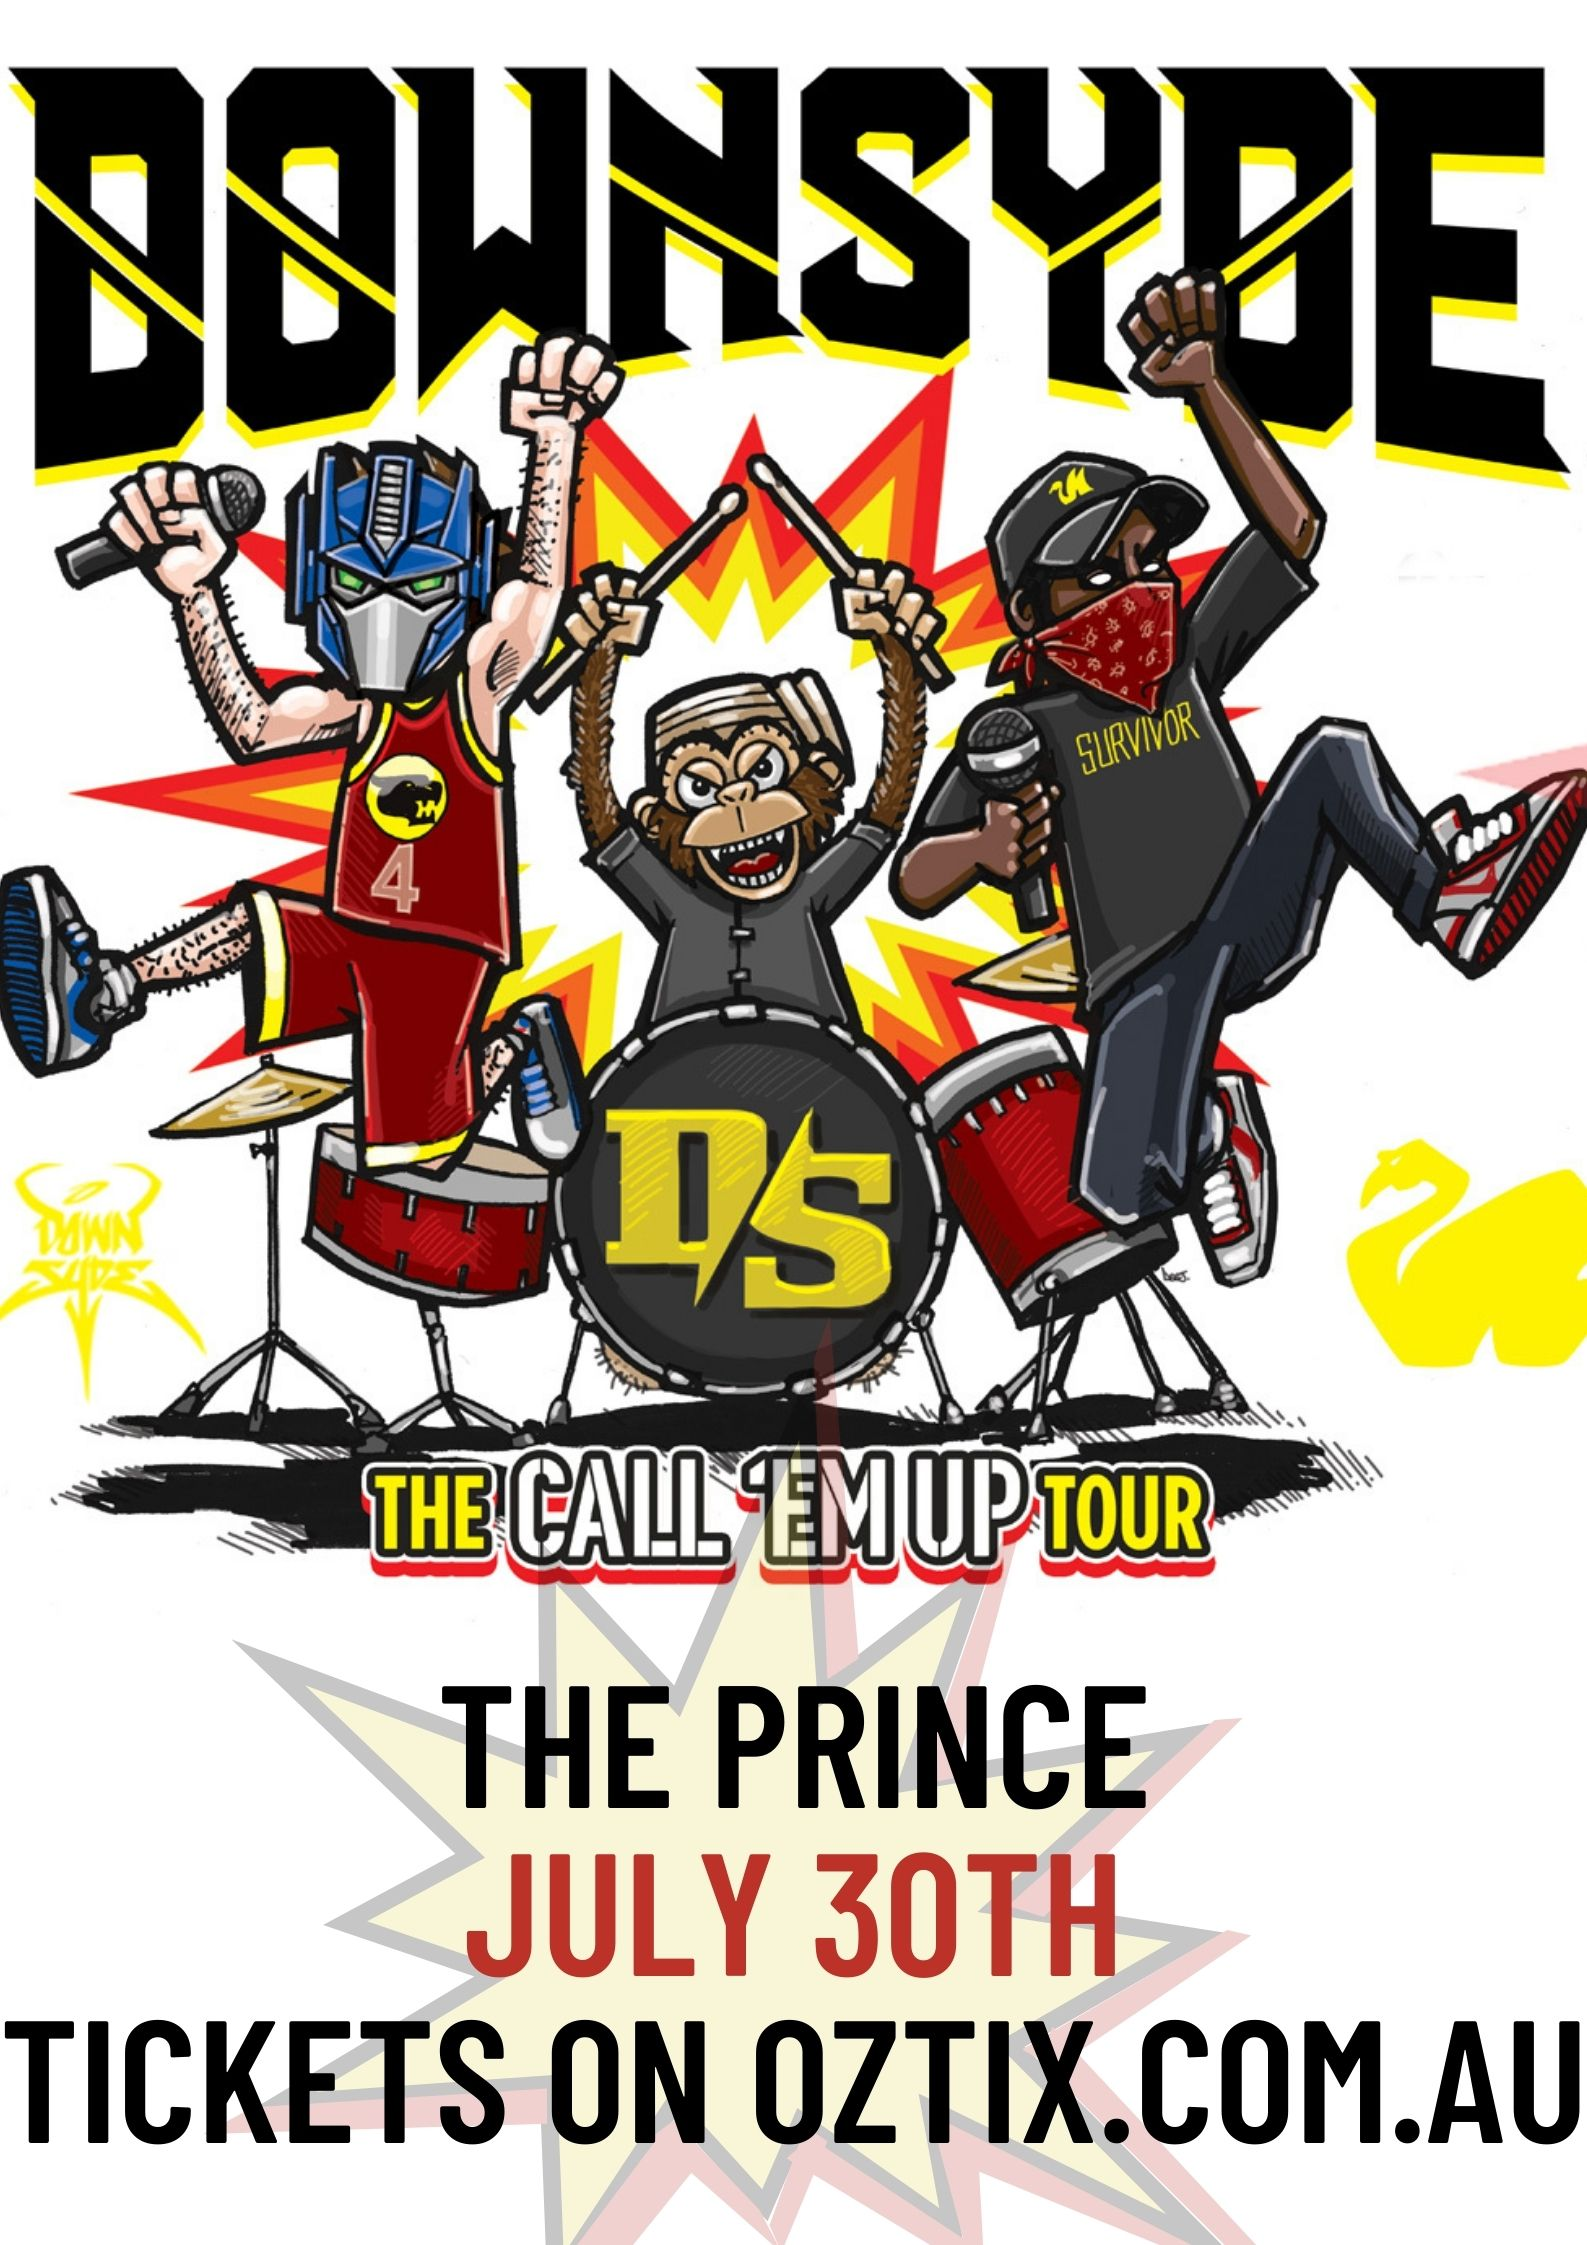 THE PRINCE JULY 30TH TICKETS ON OZTIX.COM.AU